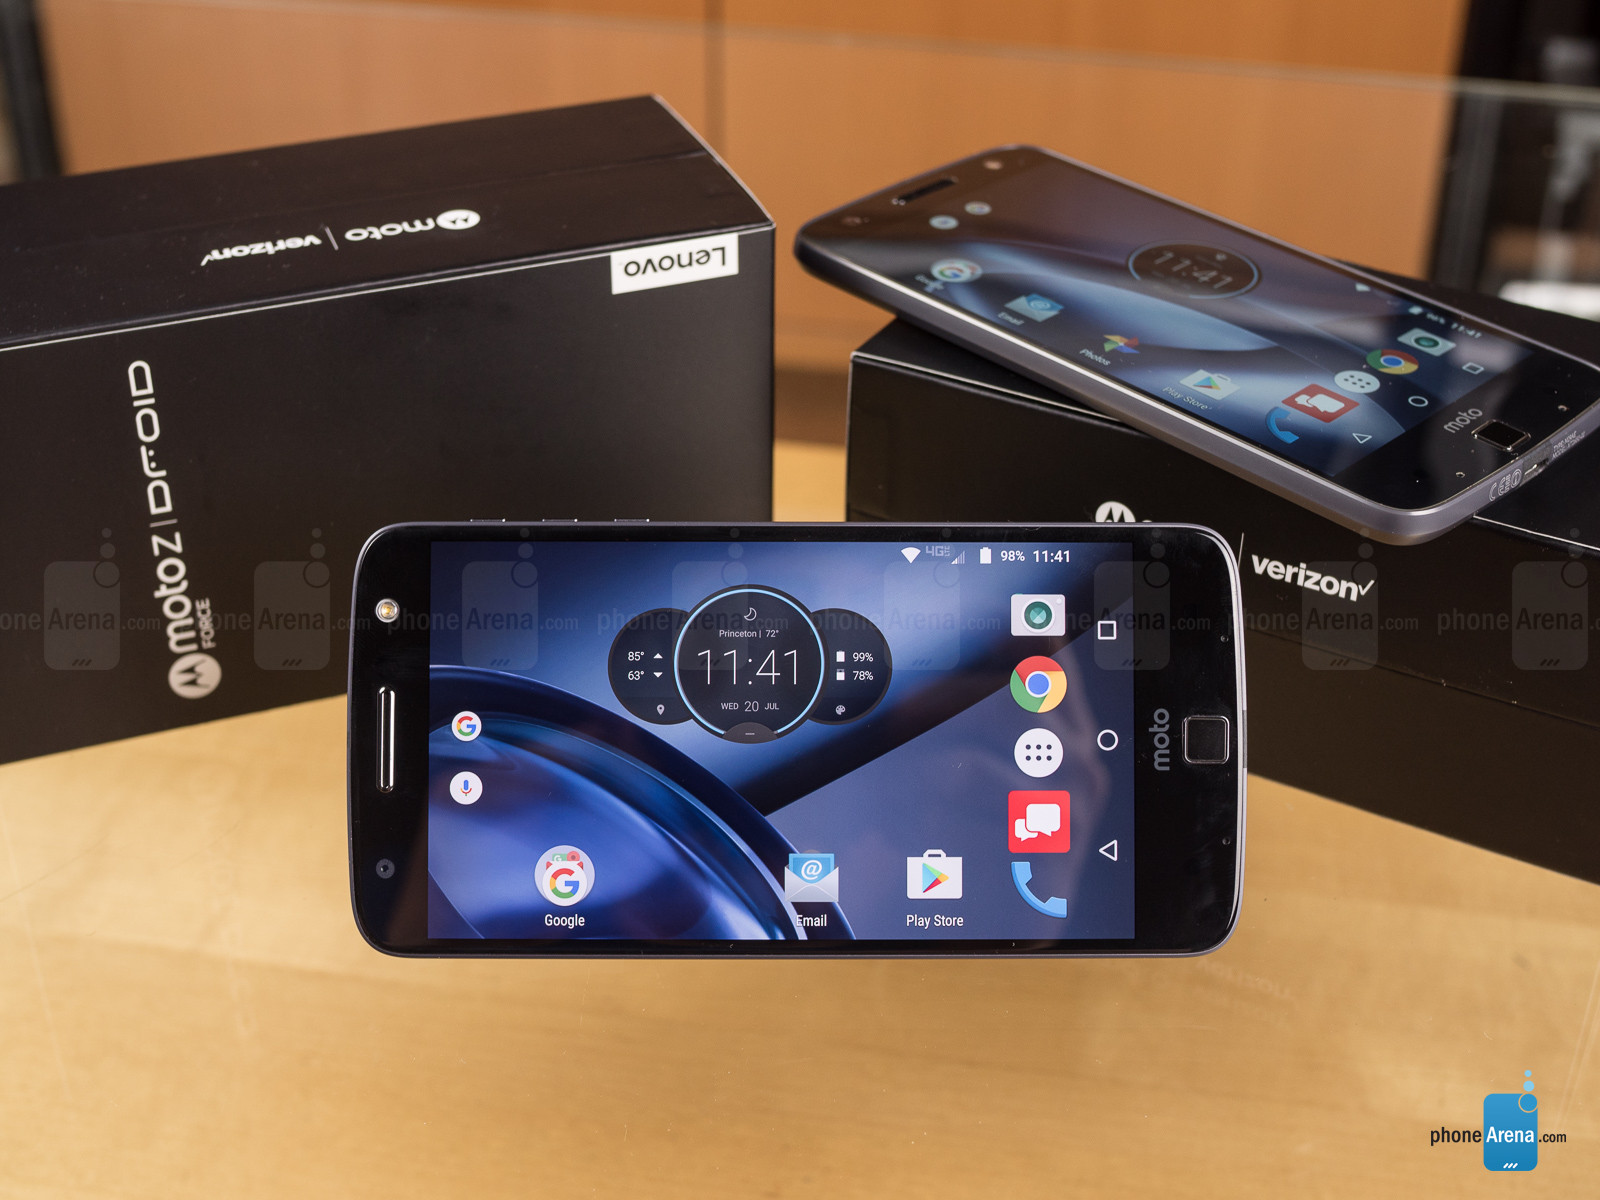 Motorola To Release Android 7.0 Nougat To The Moto Z and G4